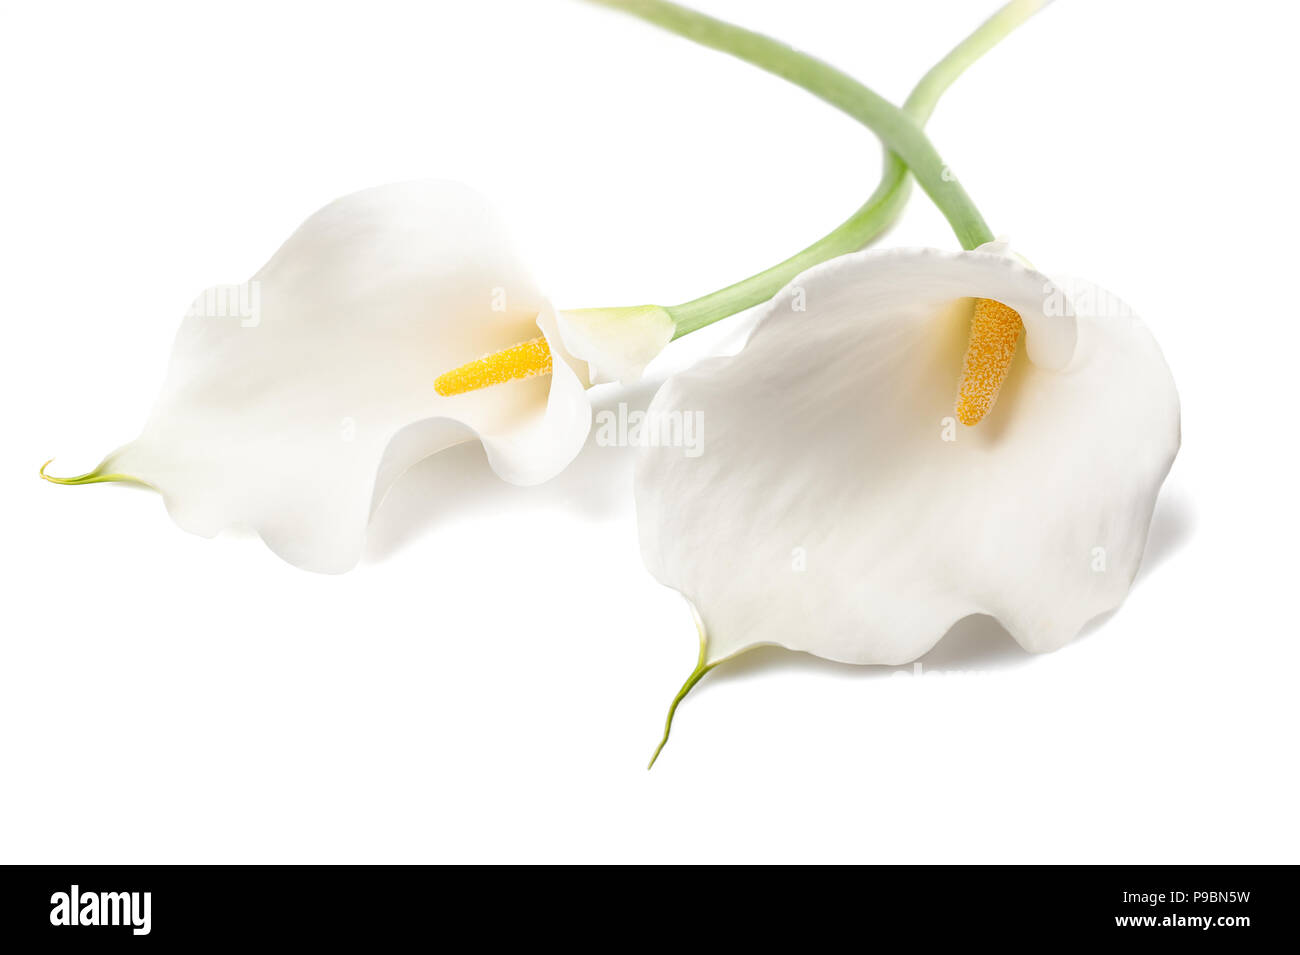 White calla lillies, isolated on white. Bud and full-bloom - Stock Image